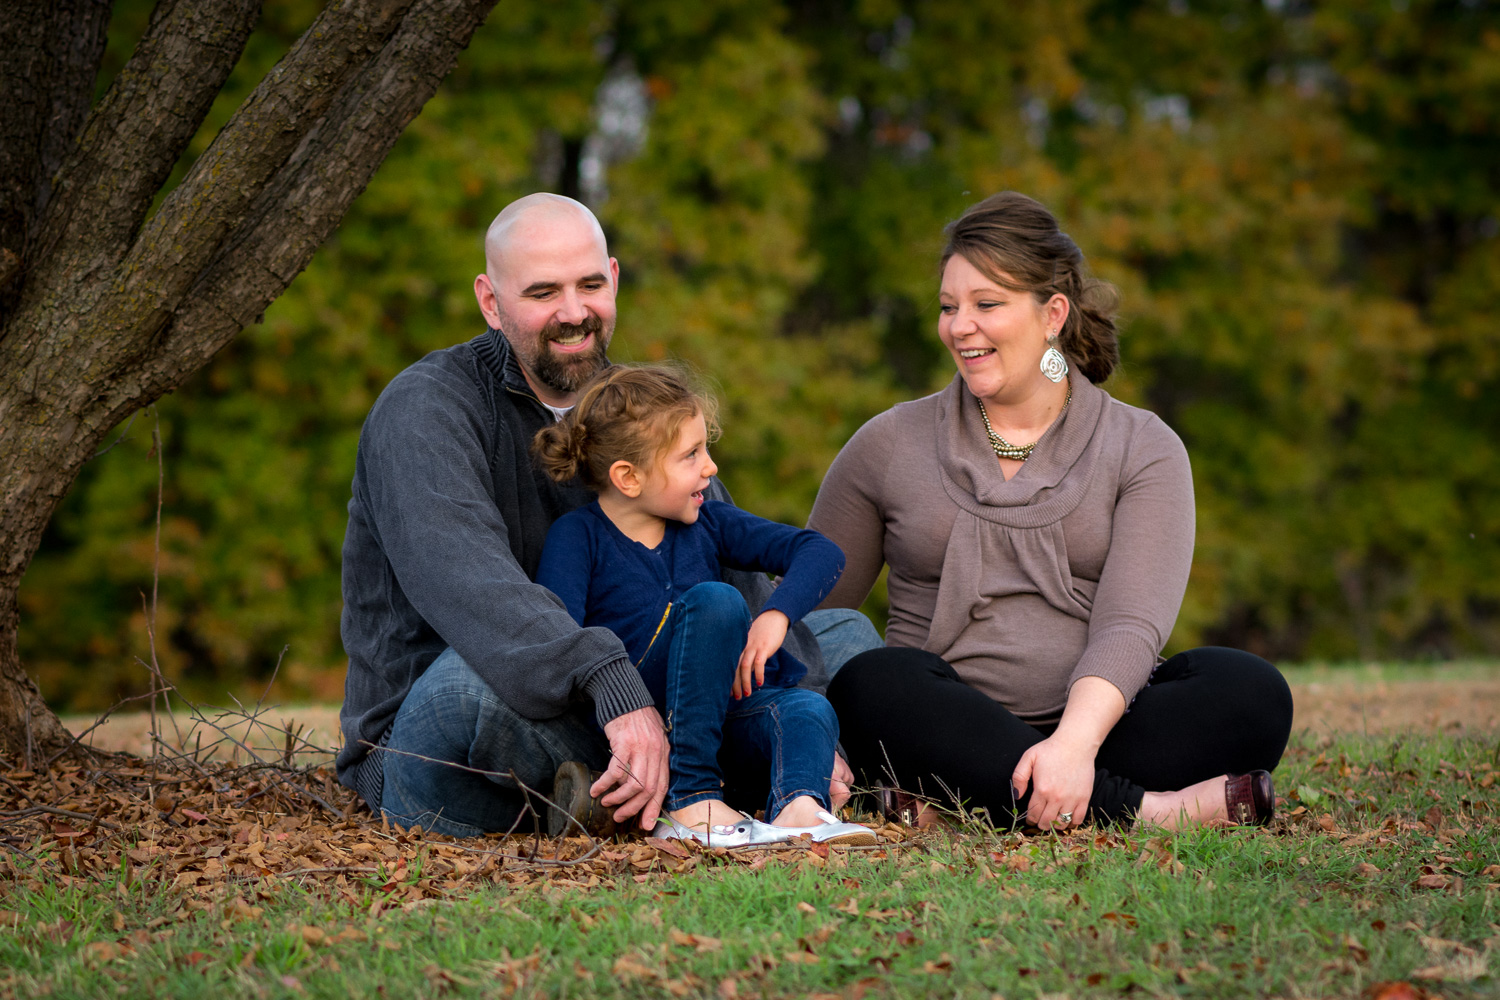 family sitting on the grass - 5 Crucial Mistakes You Need to Avoid When Photographing Clients